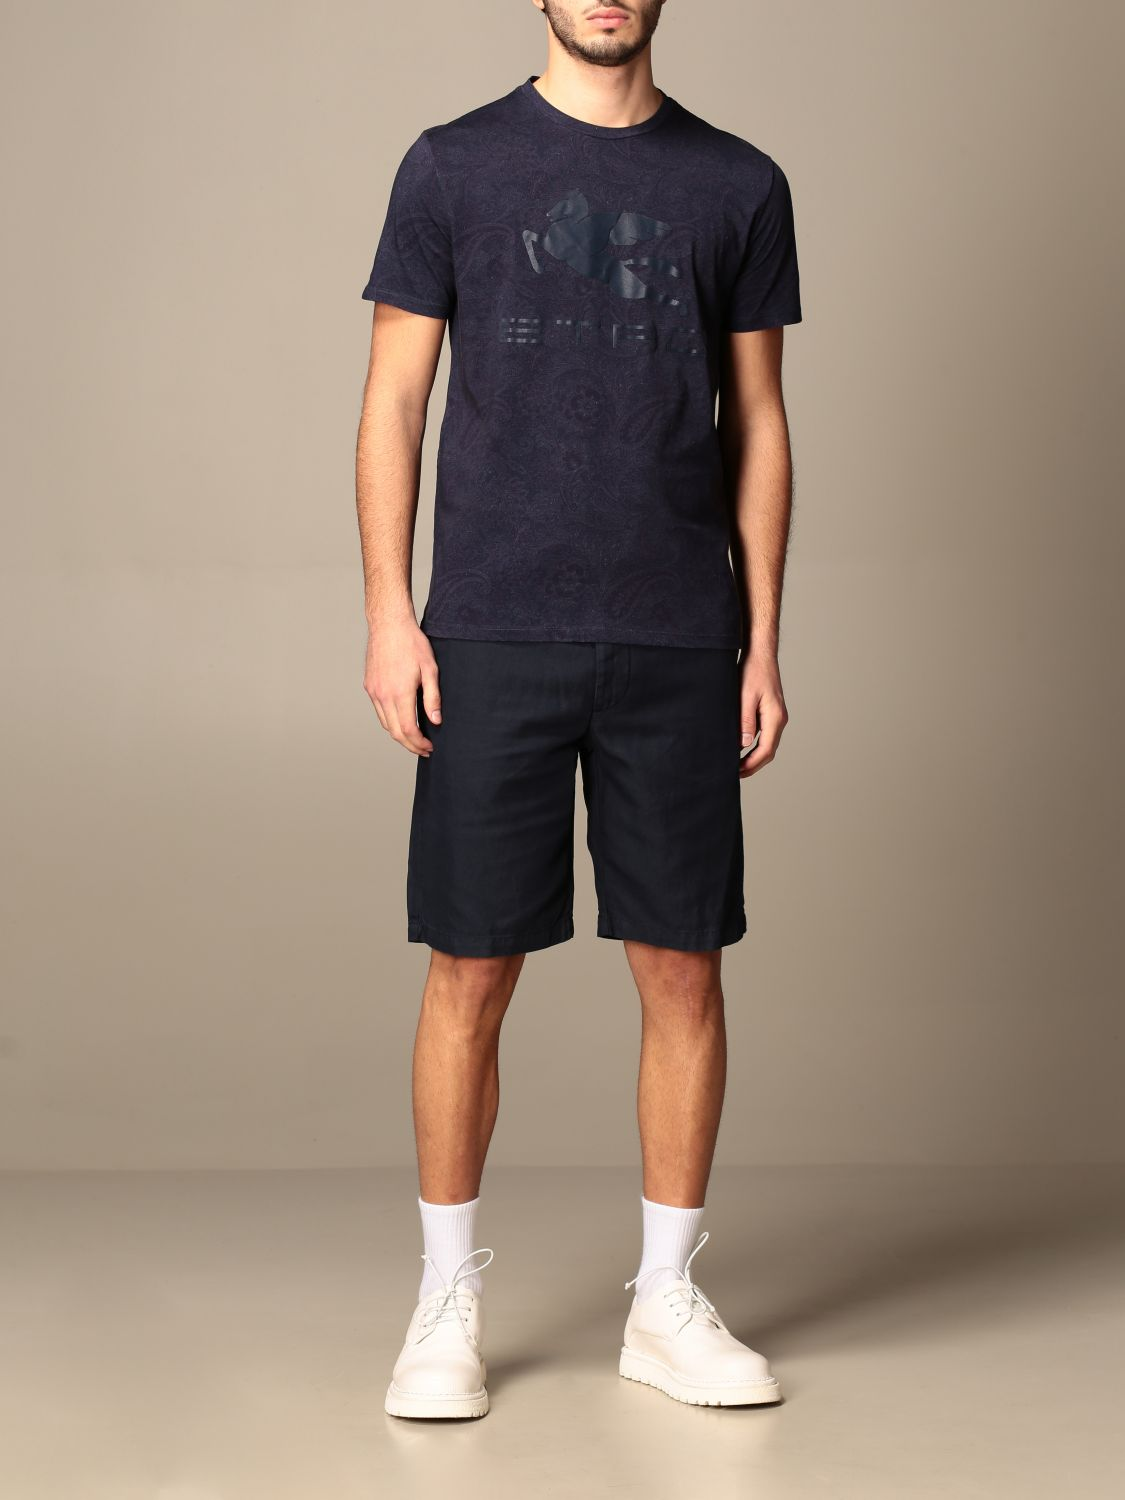 T-shirt Etro: Etro t-shirt in paisley patterned cotton with Pegasus gnawed blue 2